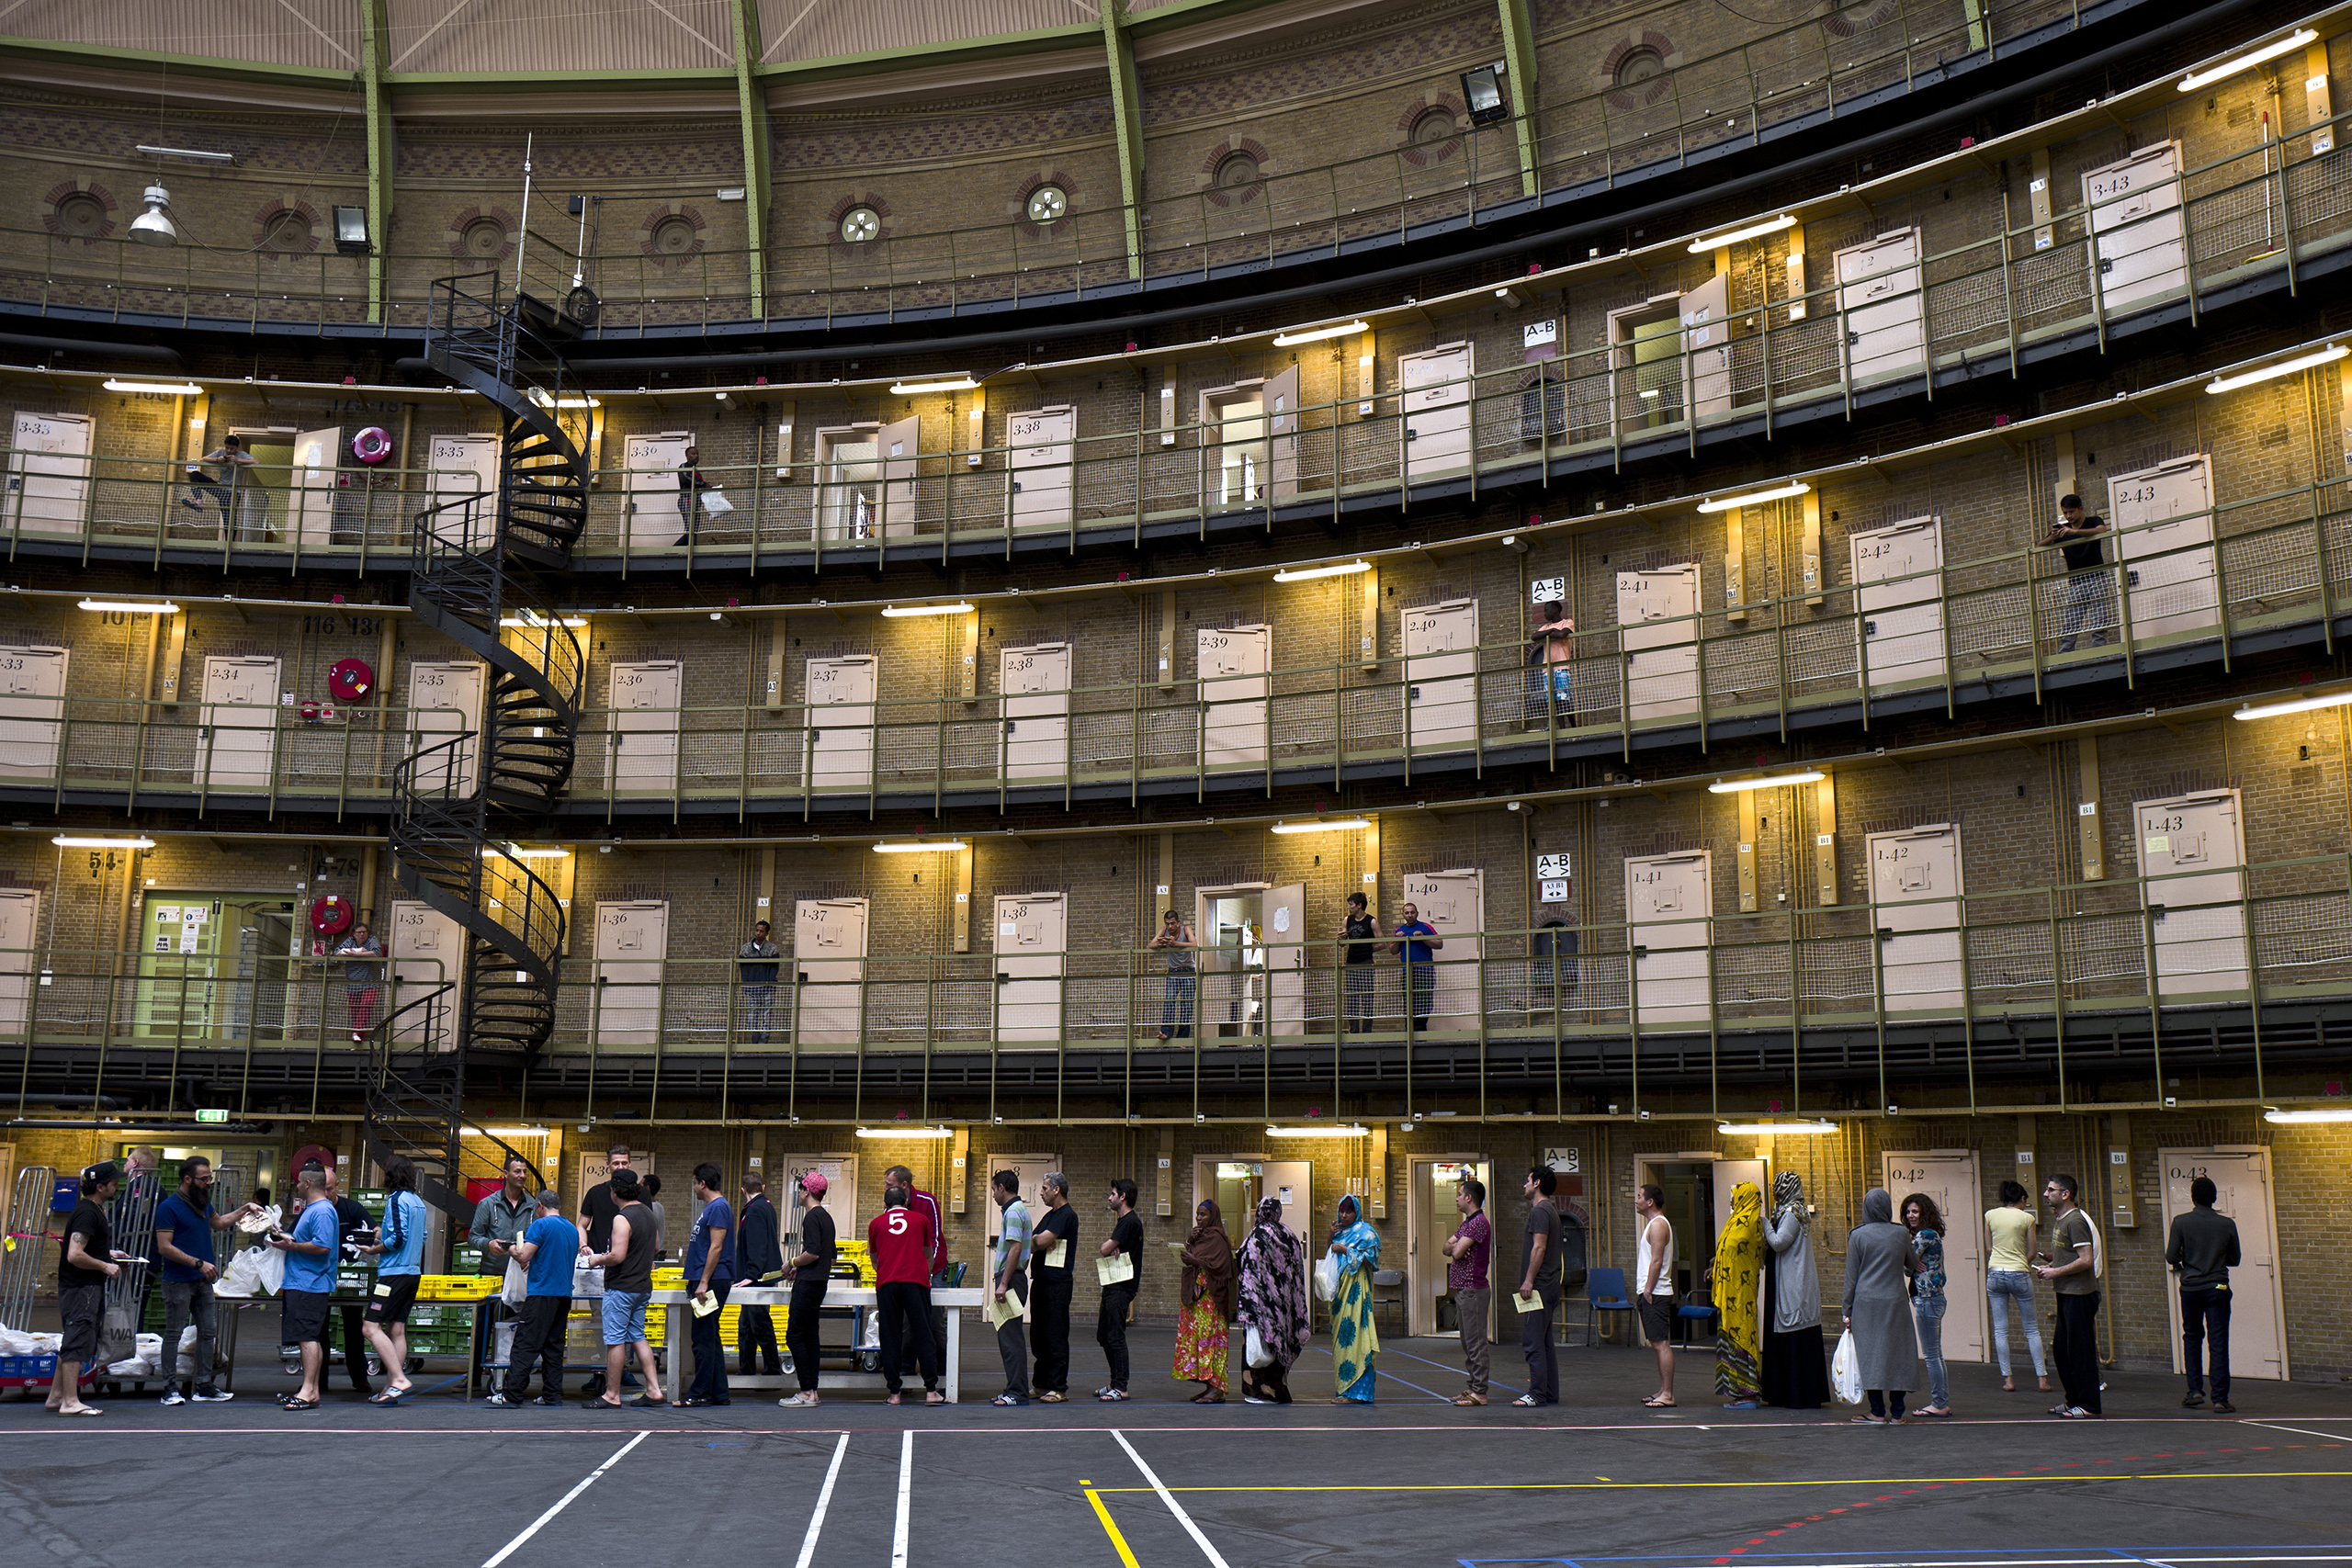 Refugees: Netherlands Puts Asylum-Seekers in Former Prisons | Time